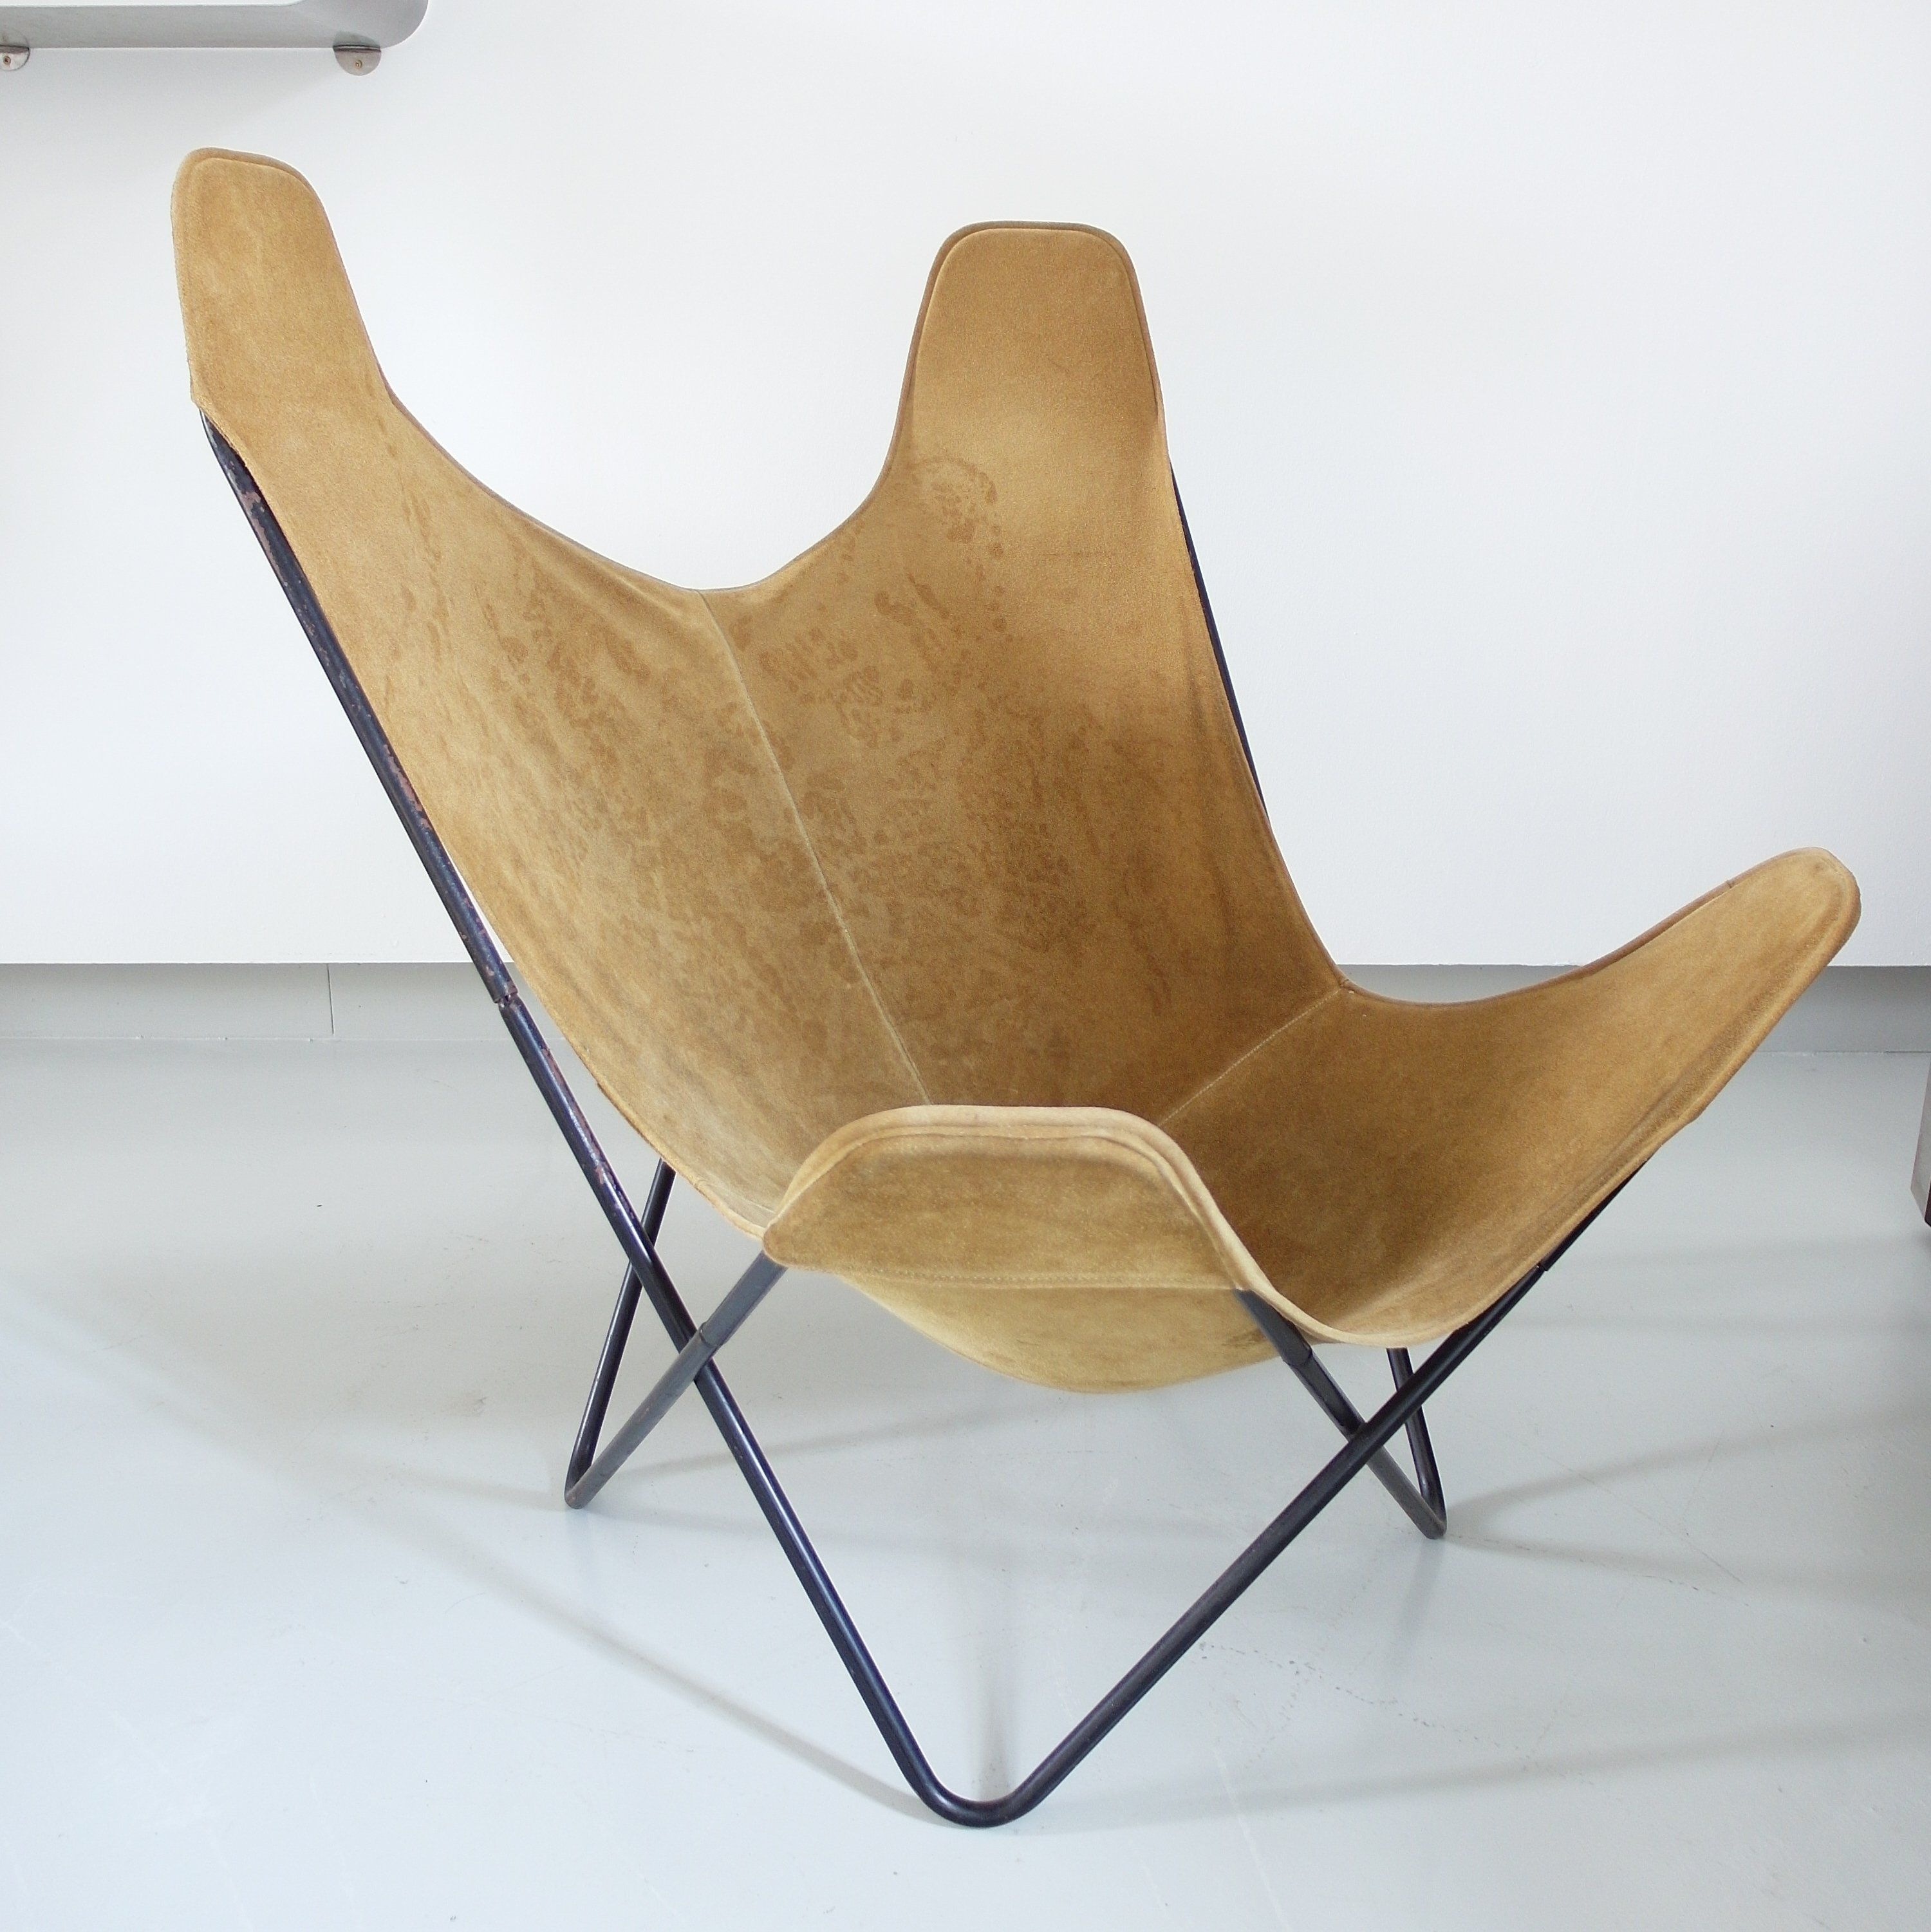 Butterfly Chair Knoll Butterfly Chair By Jorge Ferrari Hardoy For Knoll 73023